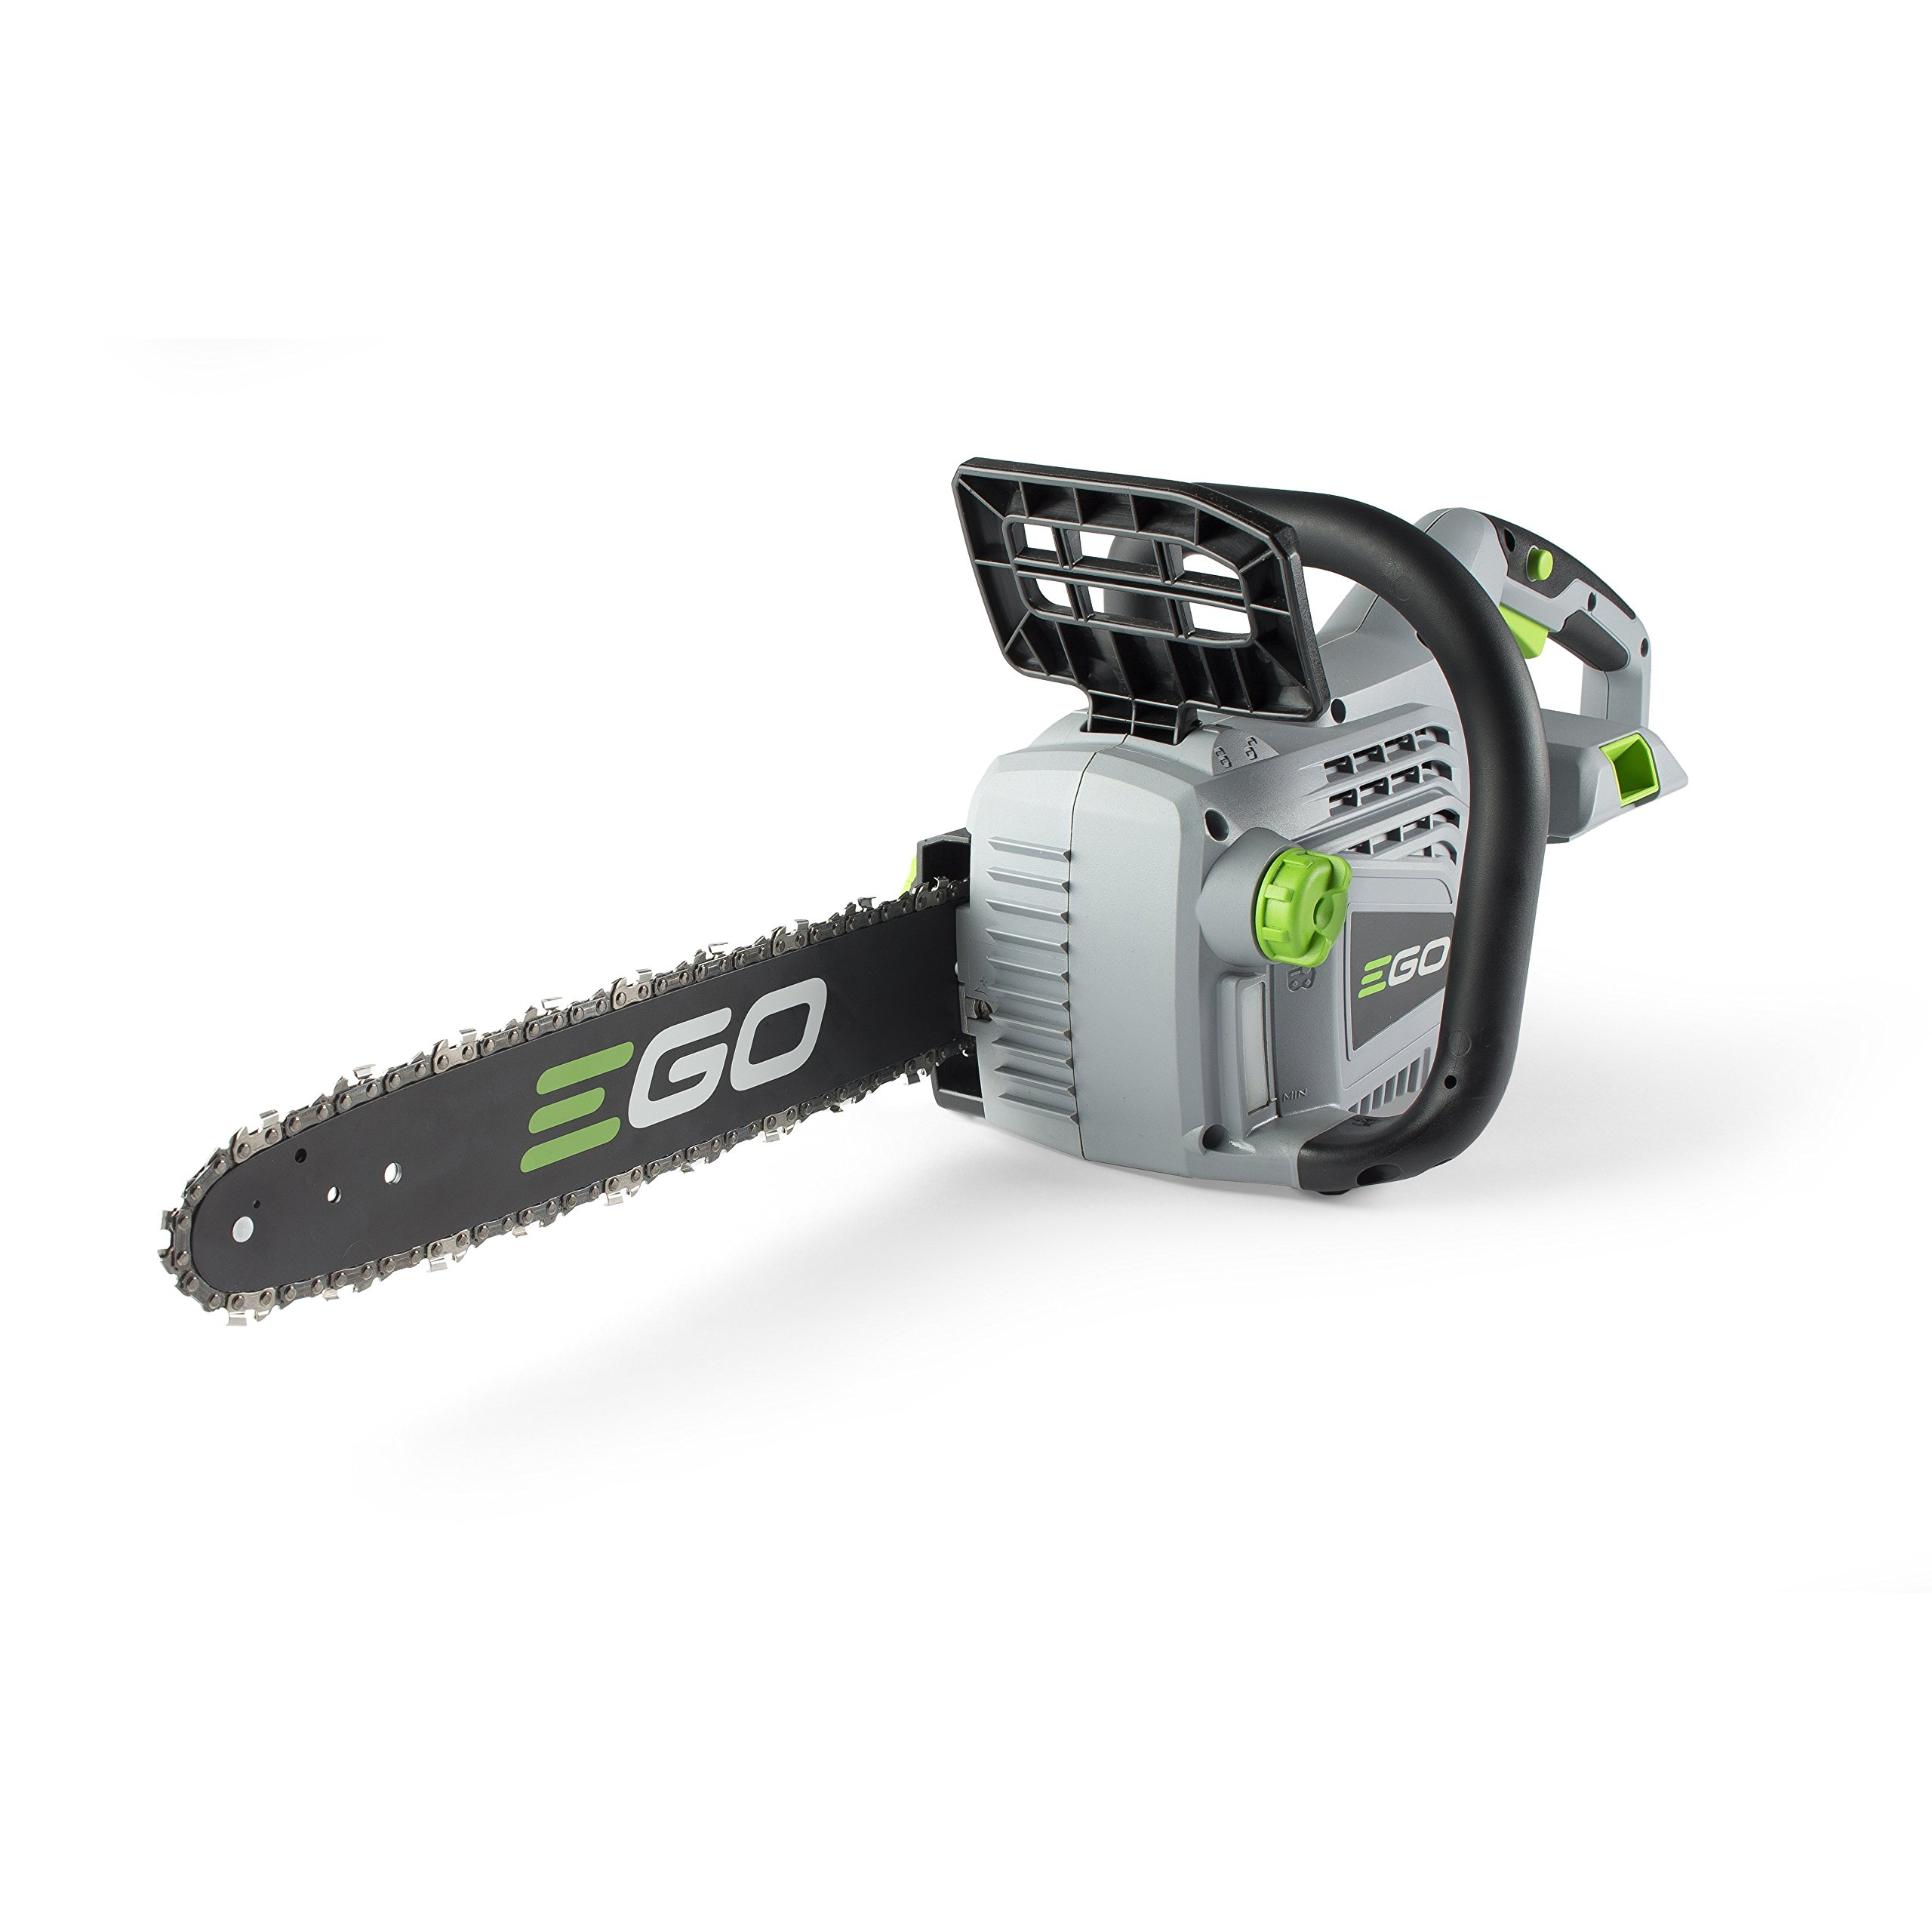 EGO Power+ CS1400 14-Inch 56-Volt Lithium-Ion Cordless Chainsaw - Battery and Charger Not Included by EGO Power+